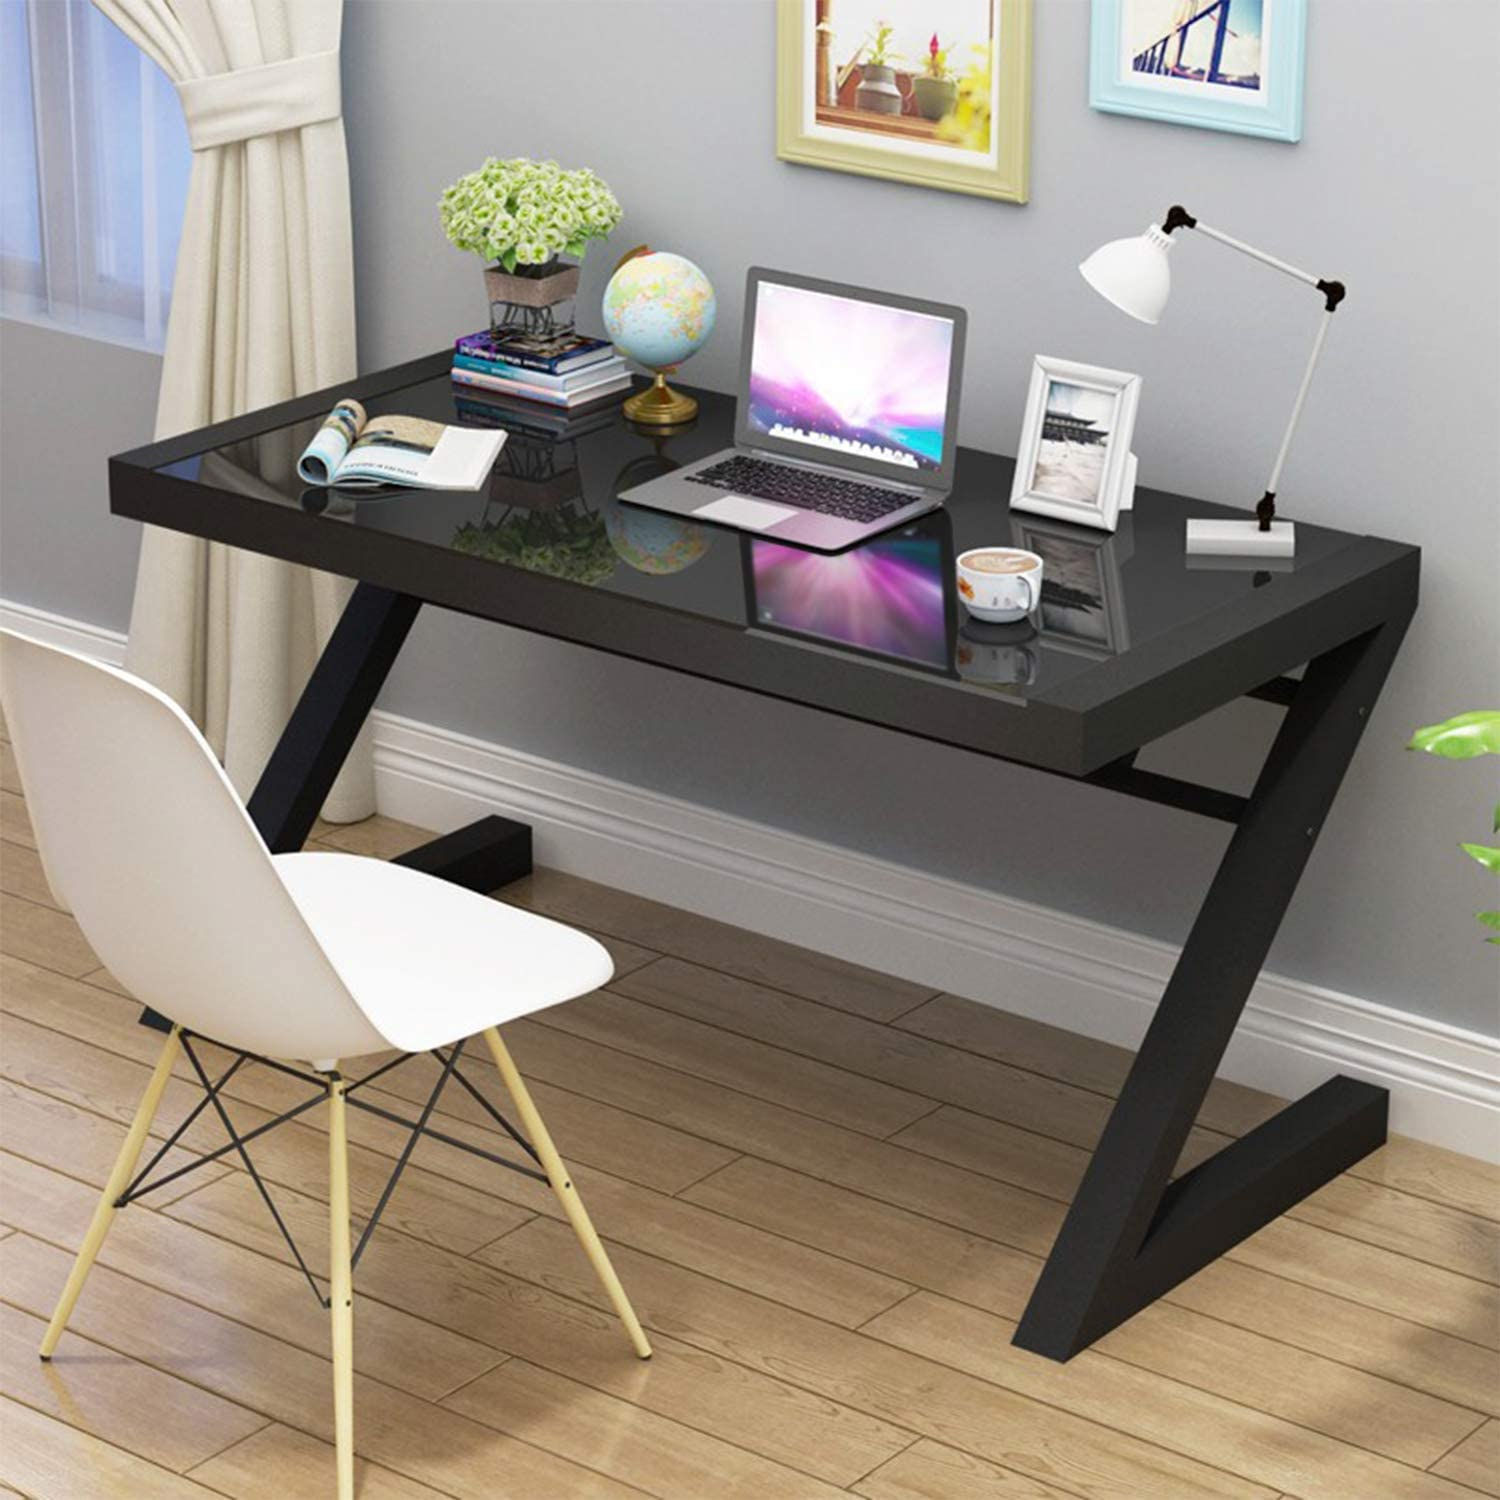 Jerry & Maggie - Z Shape Computer Desk Modern Fashion Strength Tempered Glass Office Laptop Desk USB Accessory Attribute Multi Functional Study Writing Dinning Table Personal Workstation Home